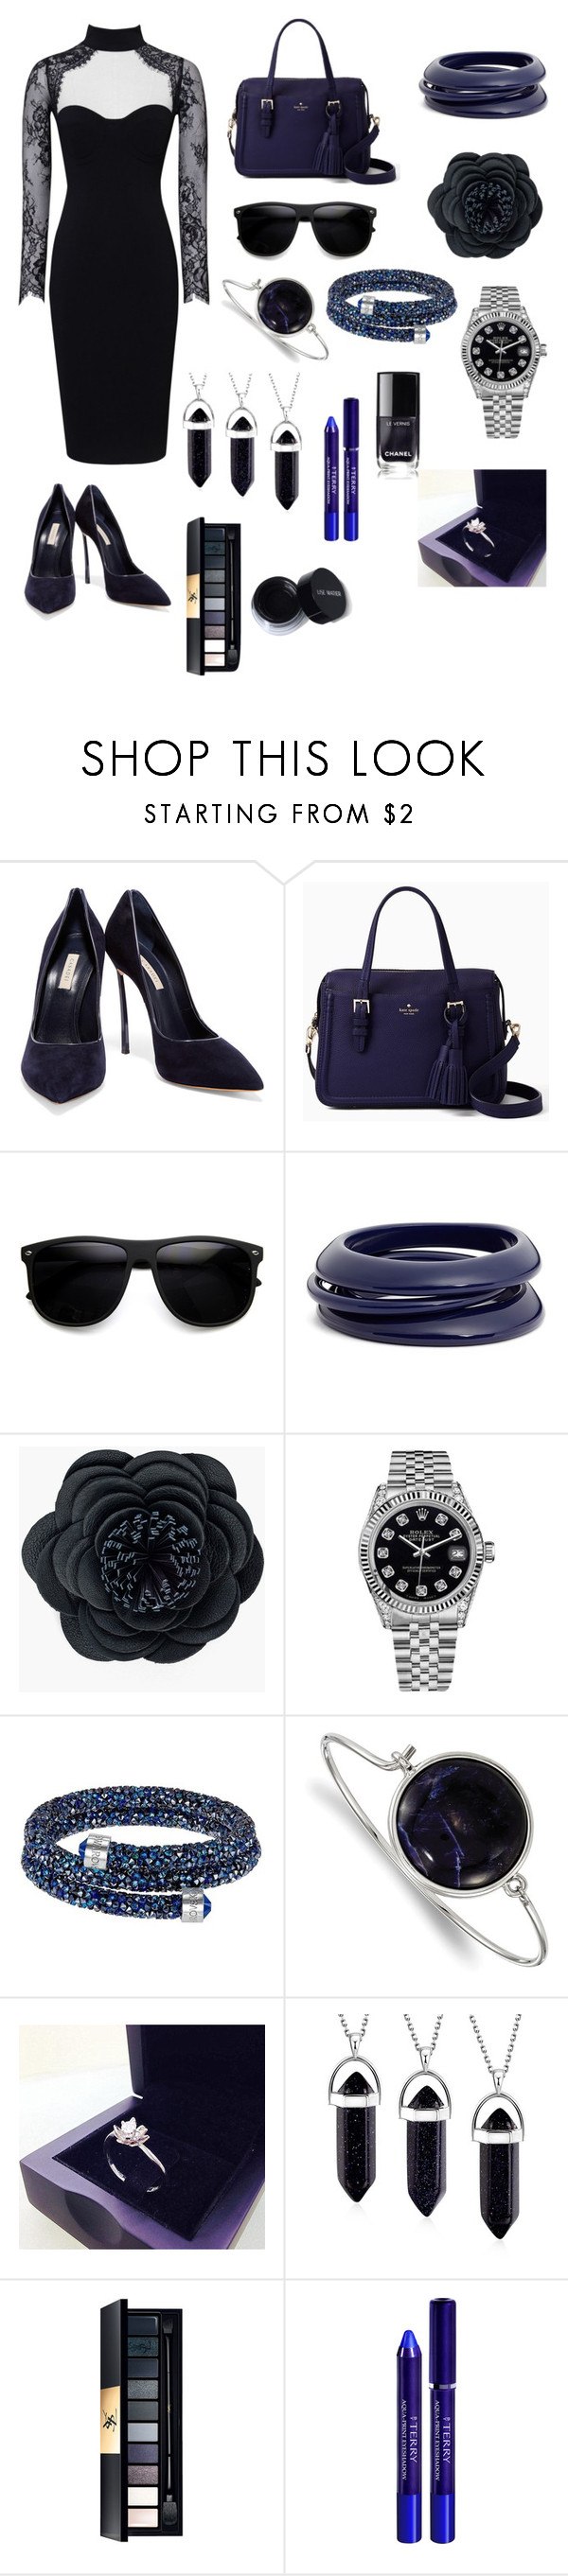 """The Blue Dress"" by giulia-ostara-re ❤ liked on Polyvore featuring Casadei, Kate Spade, ZeroUV, ZENZii, Chico's, Rolex, Swarovski, 1928 and By Terry"